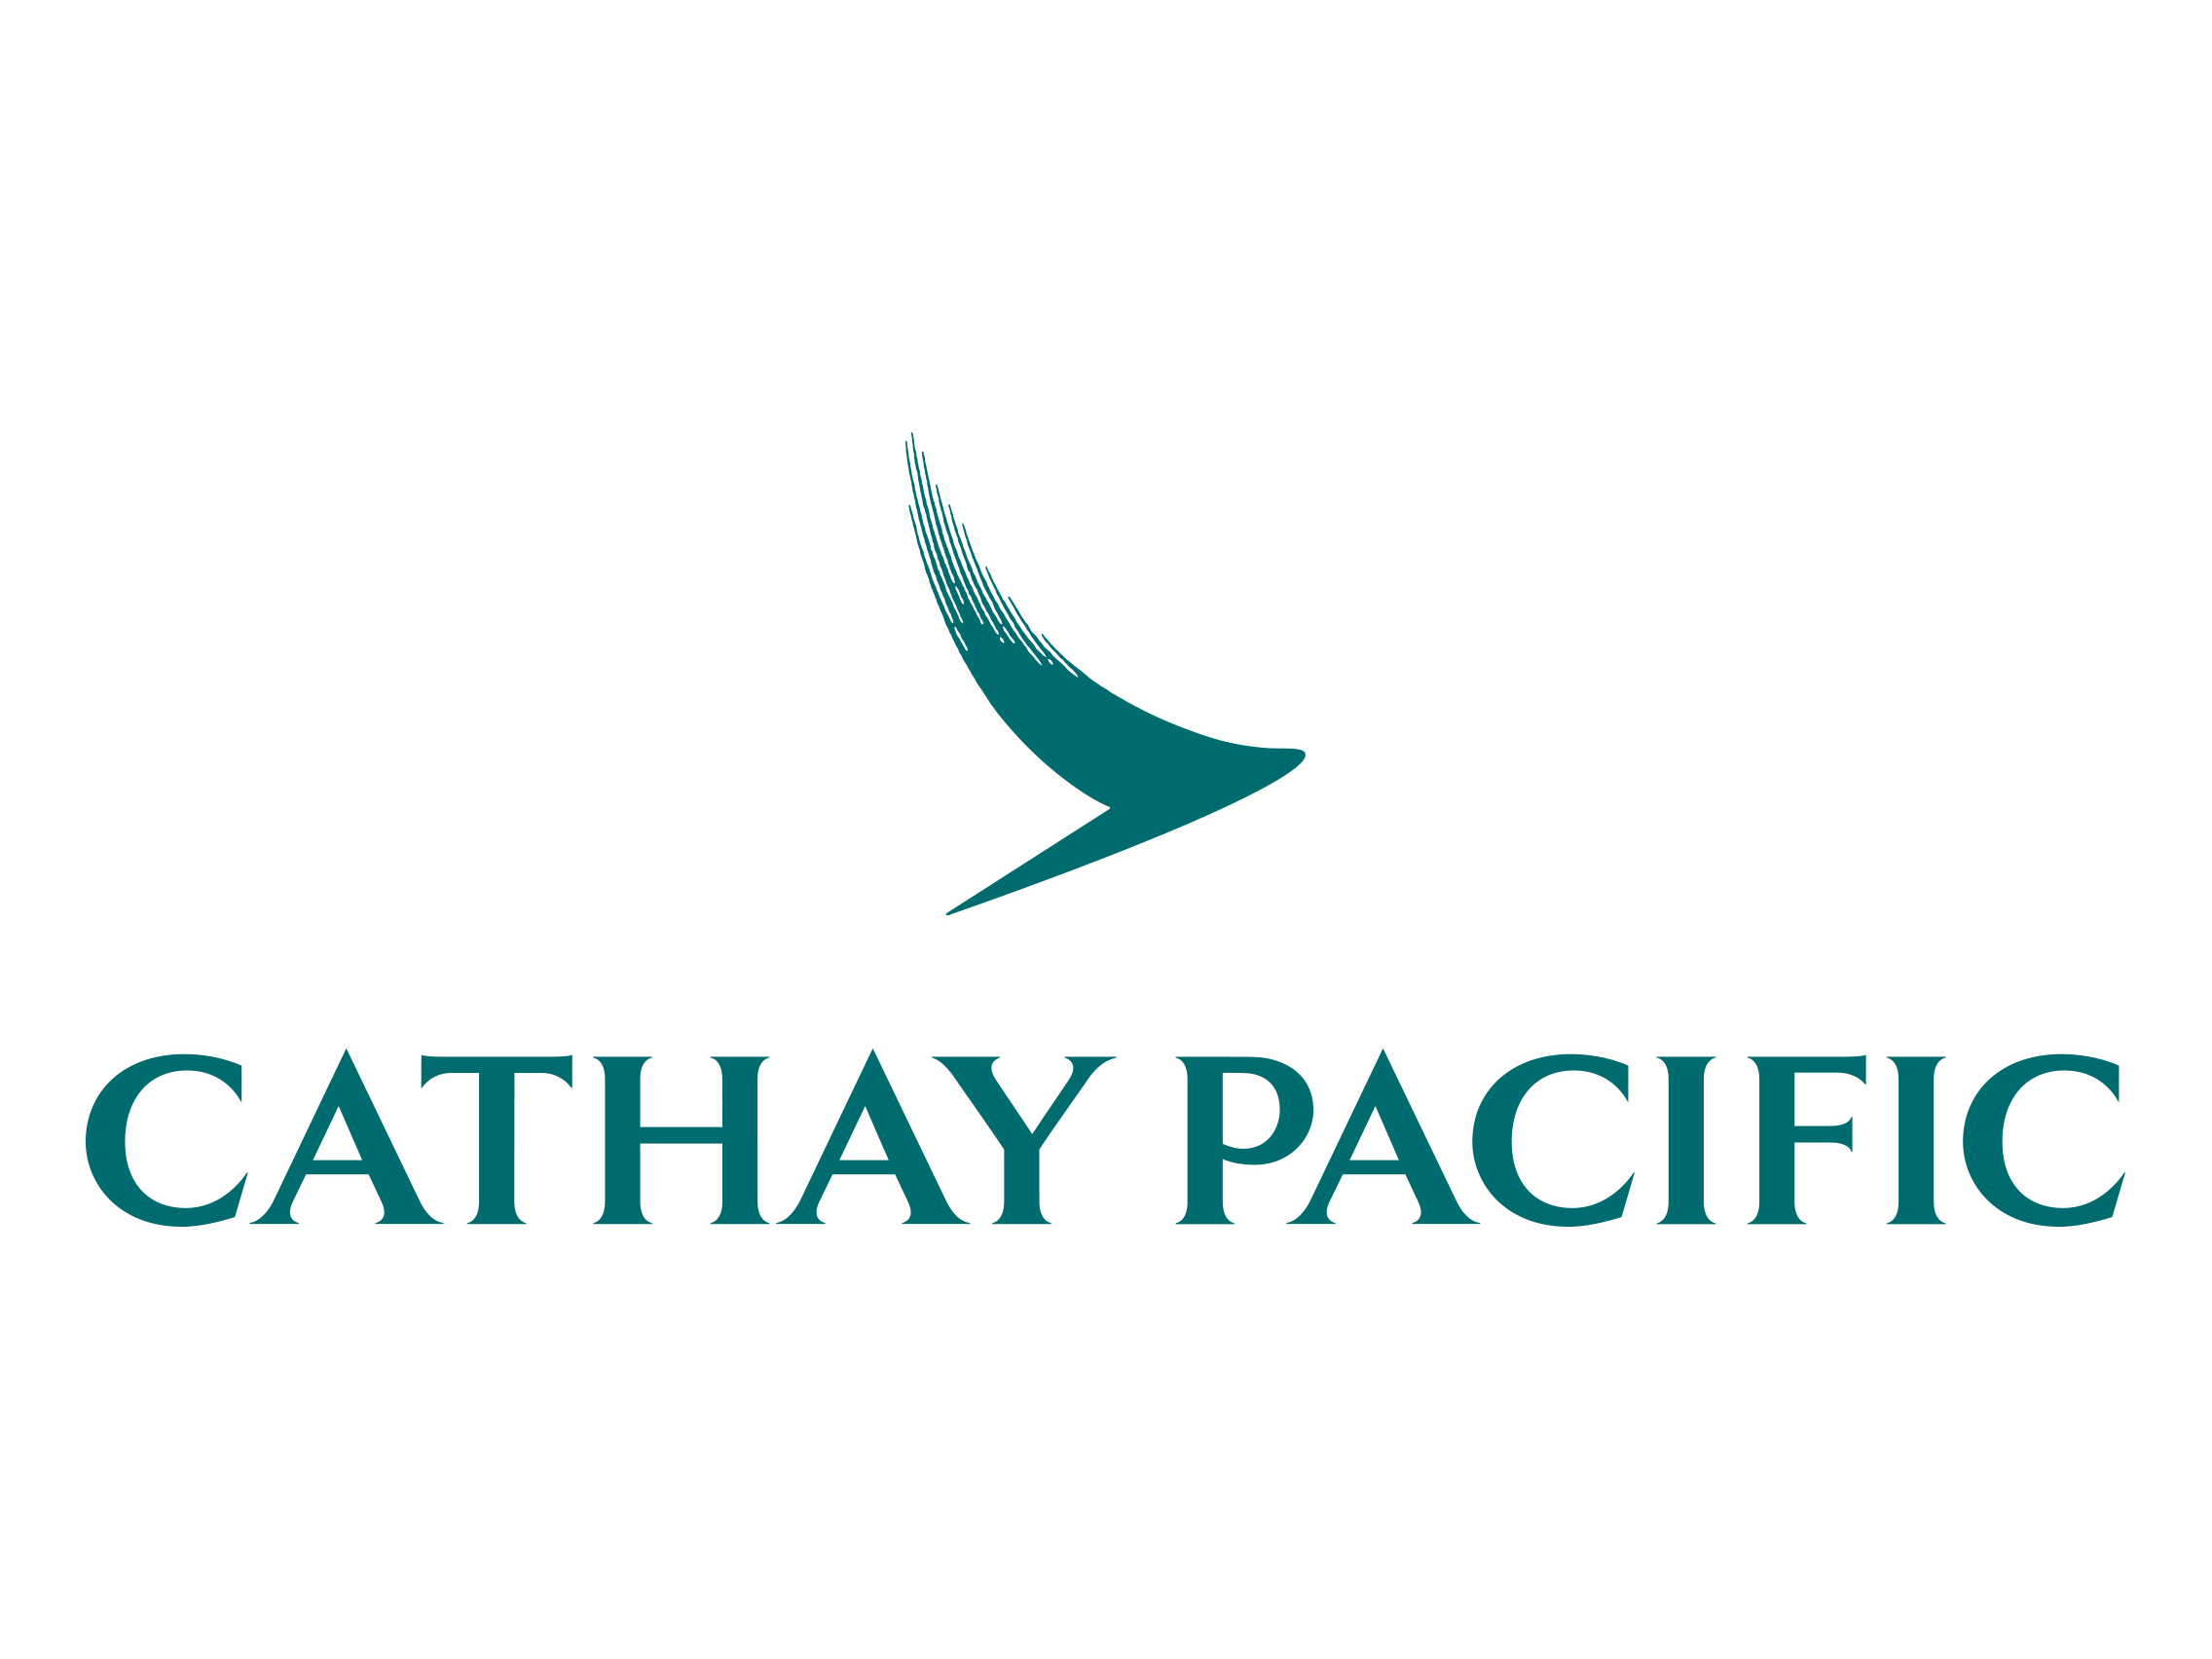 cathay pacific airlines Find discount cathay pacific flights from c$880 flightnetworkcom offers free price drop protection on all flights on cathay pacific its star alliance partners.